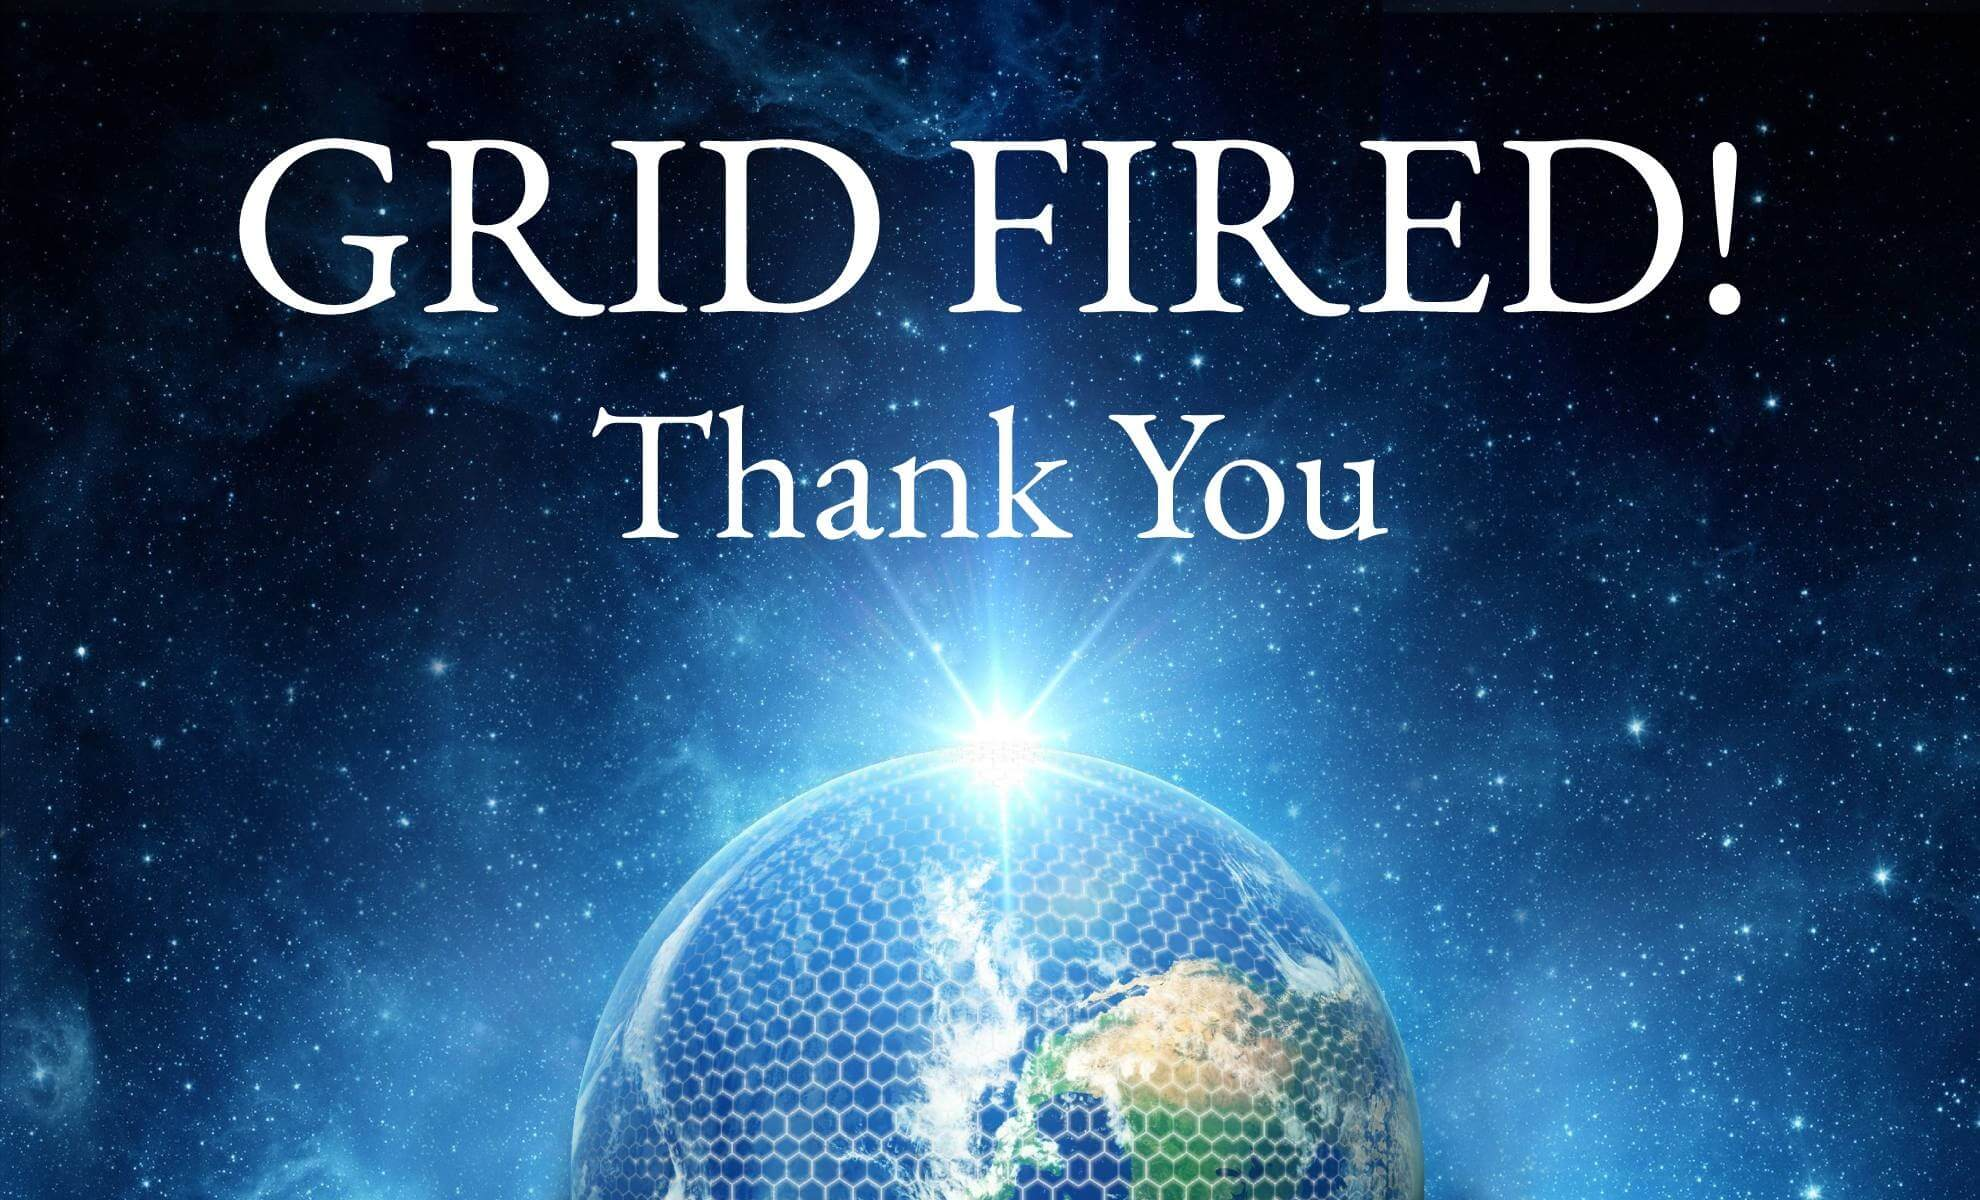 Did you fire the grid page Grid Fired Thank you 20210820